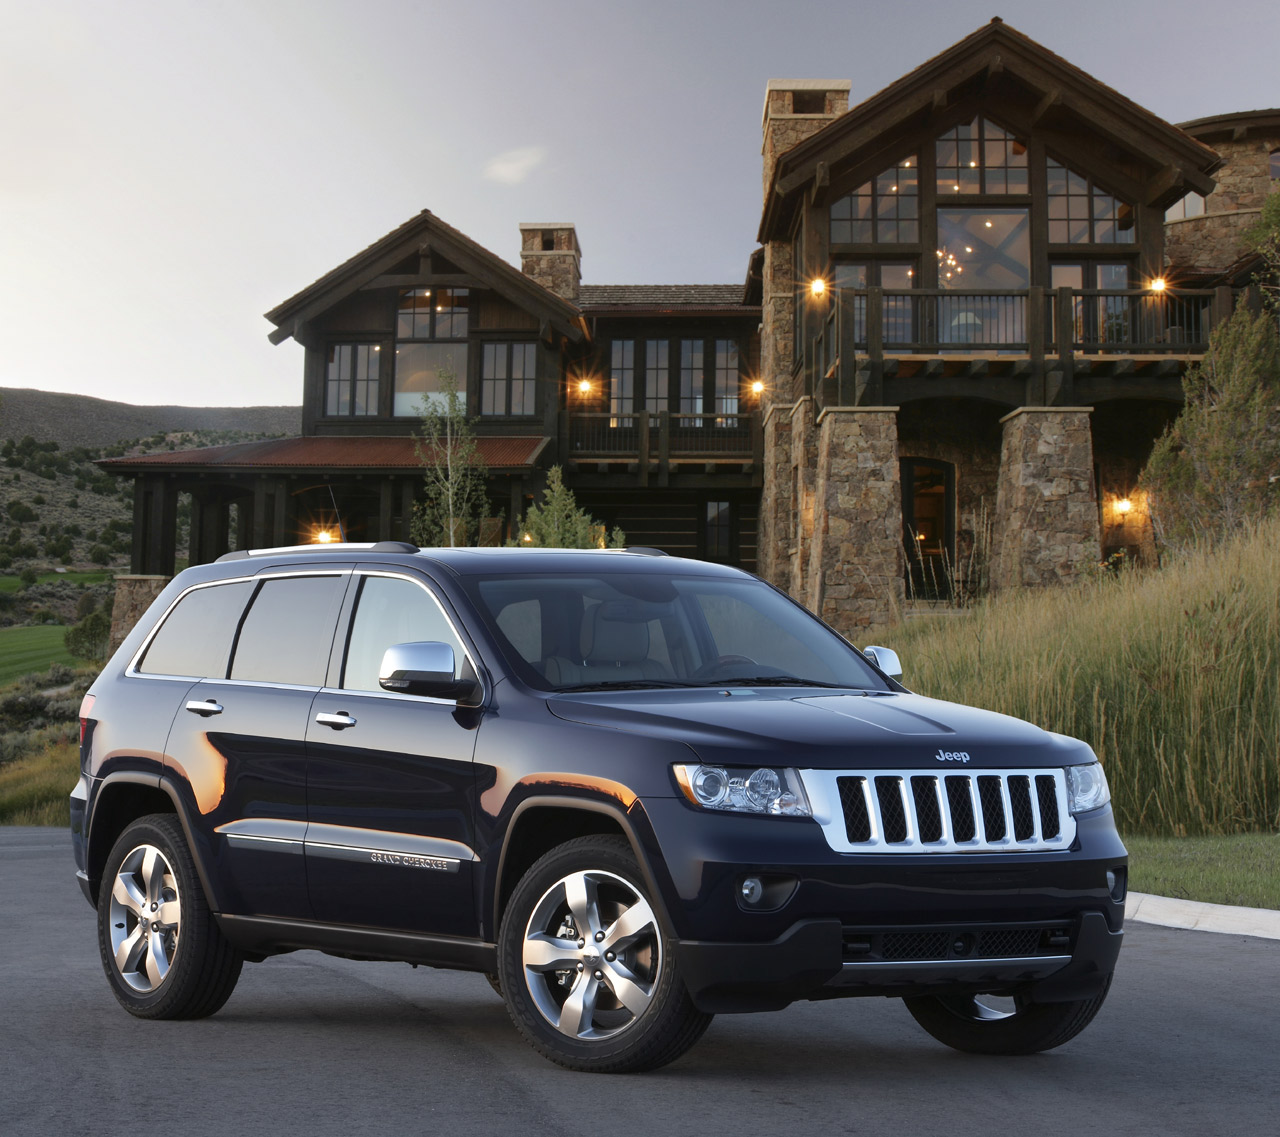 2012 jeep grand cherokee srt8 price photos. Black Bedroom Furniture Sets. Home Design Ideas